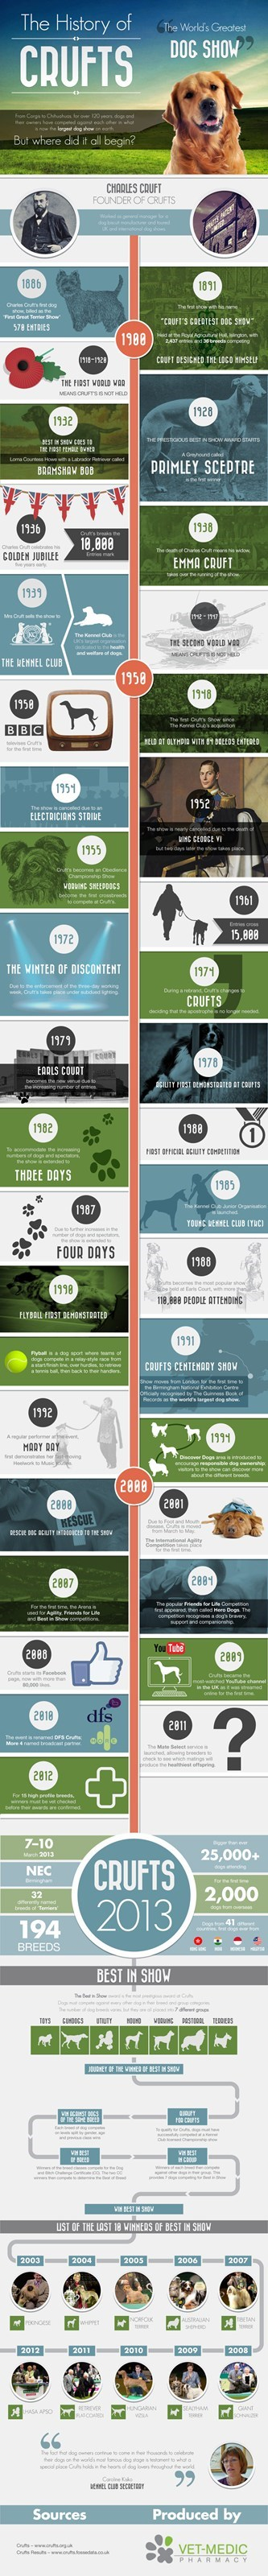 dog show time line history Crufts - 7514970624